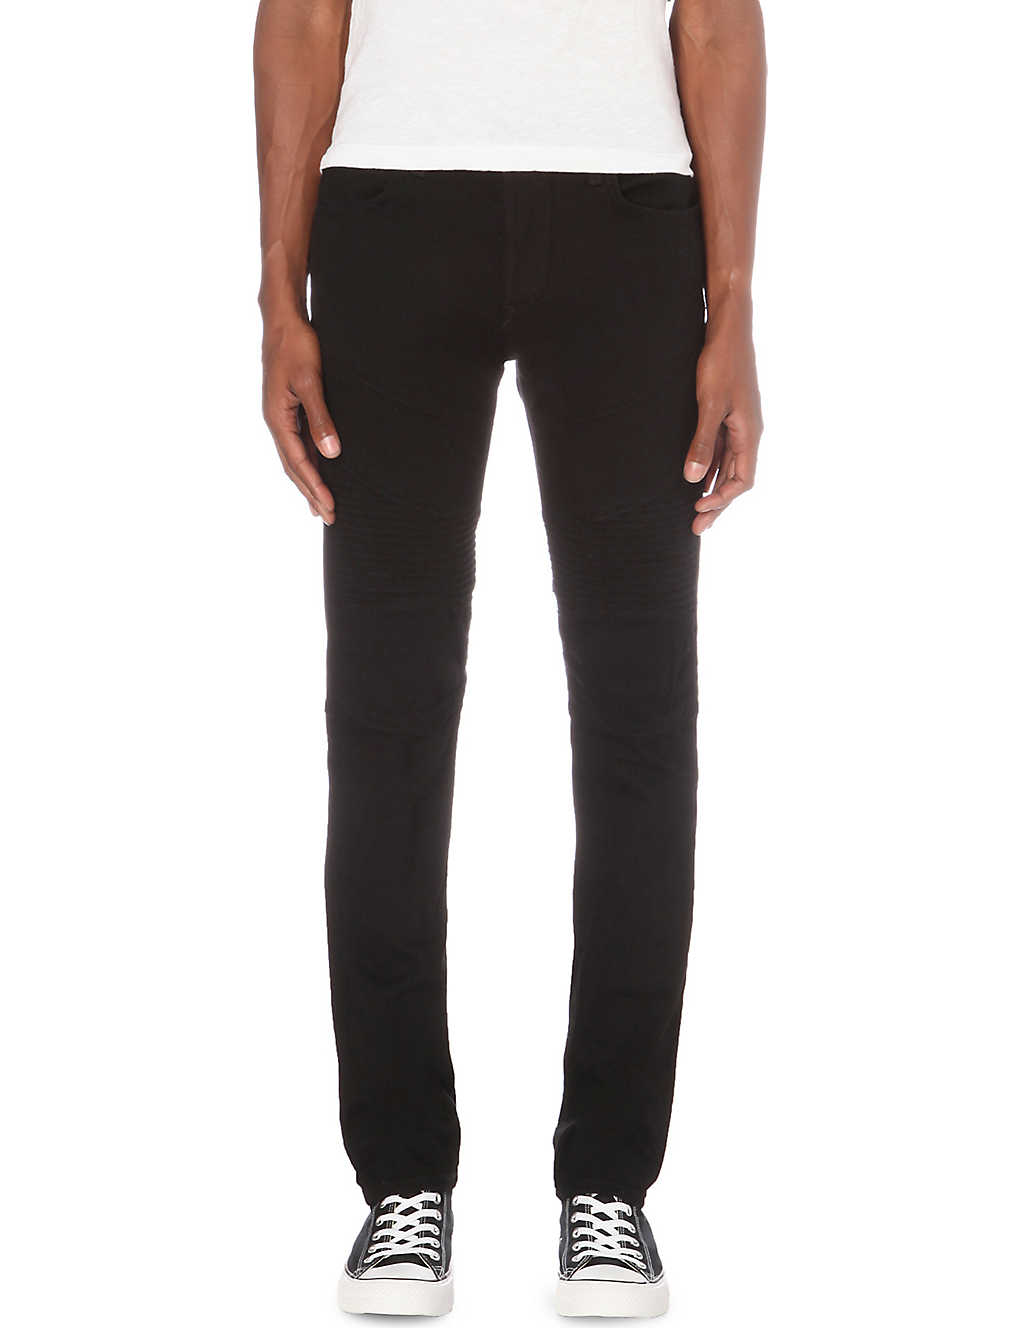 06eff36f8f9c TRUE RELIGION - Rocco Motto relaxed-fit skinny jeans | Selfridges.com